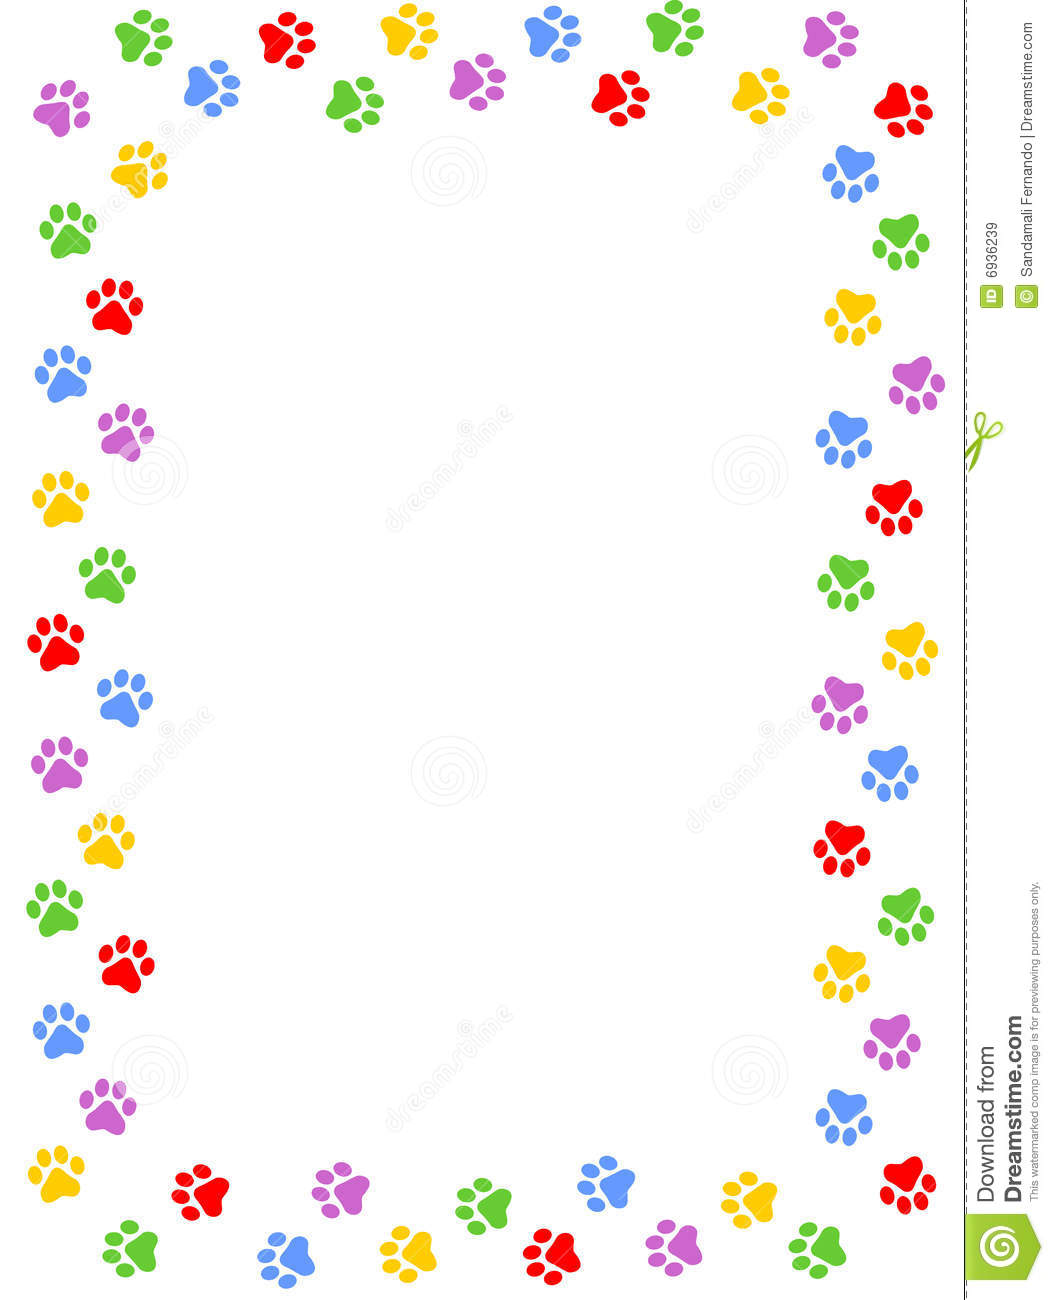 Paw Prints Border Royalty Free Stock Images - Image: 6936239